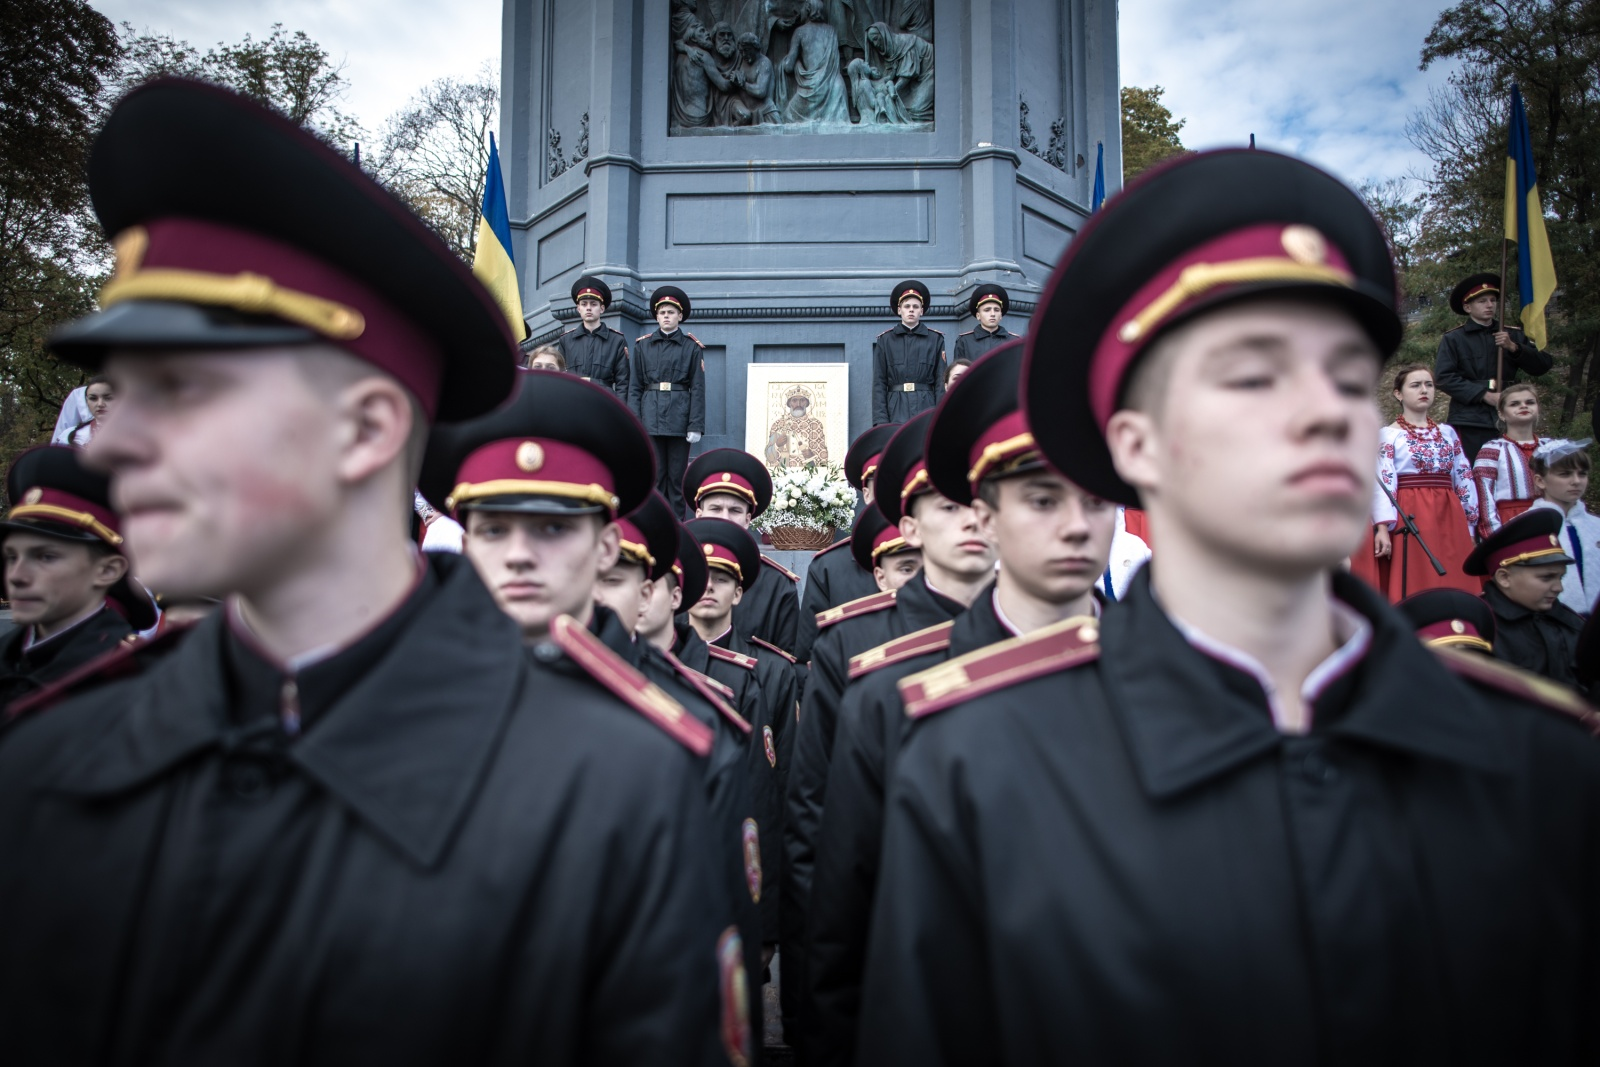 Kyiv, Ukraine (2019). The oat of the cadets of the Ukrainian military academy